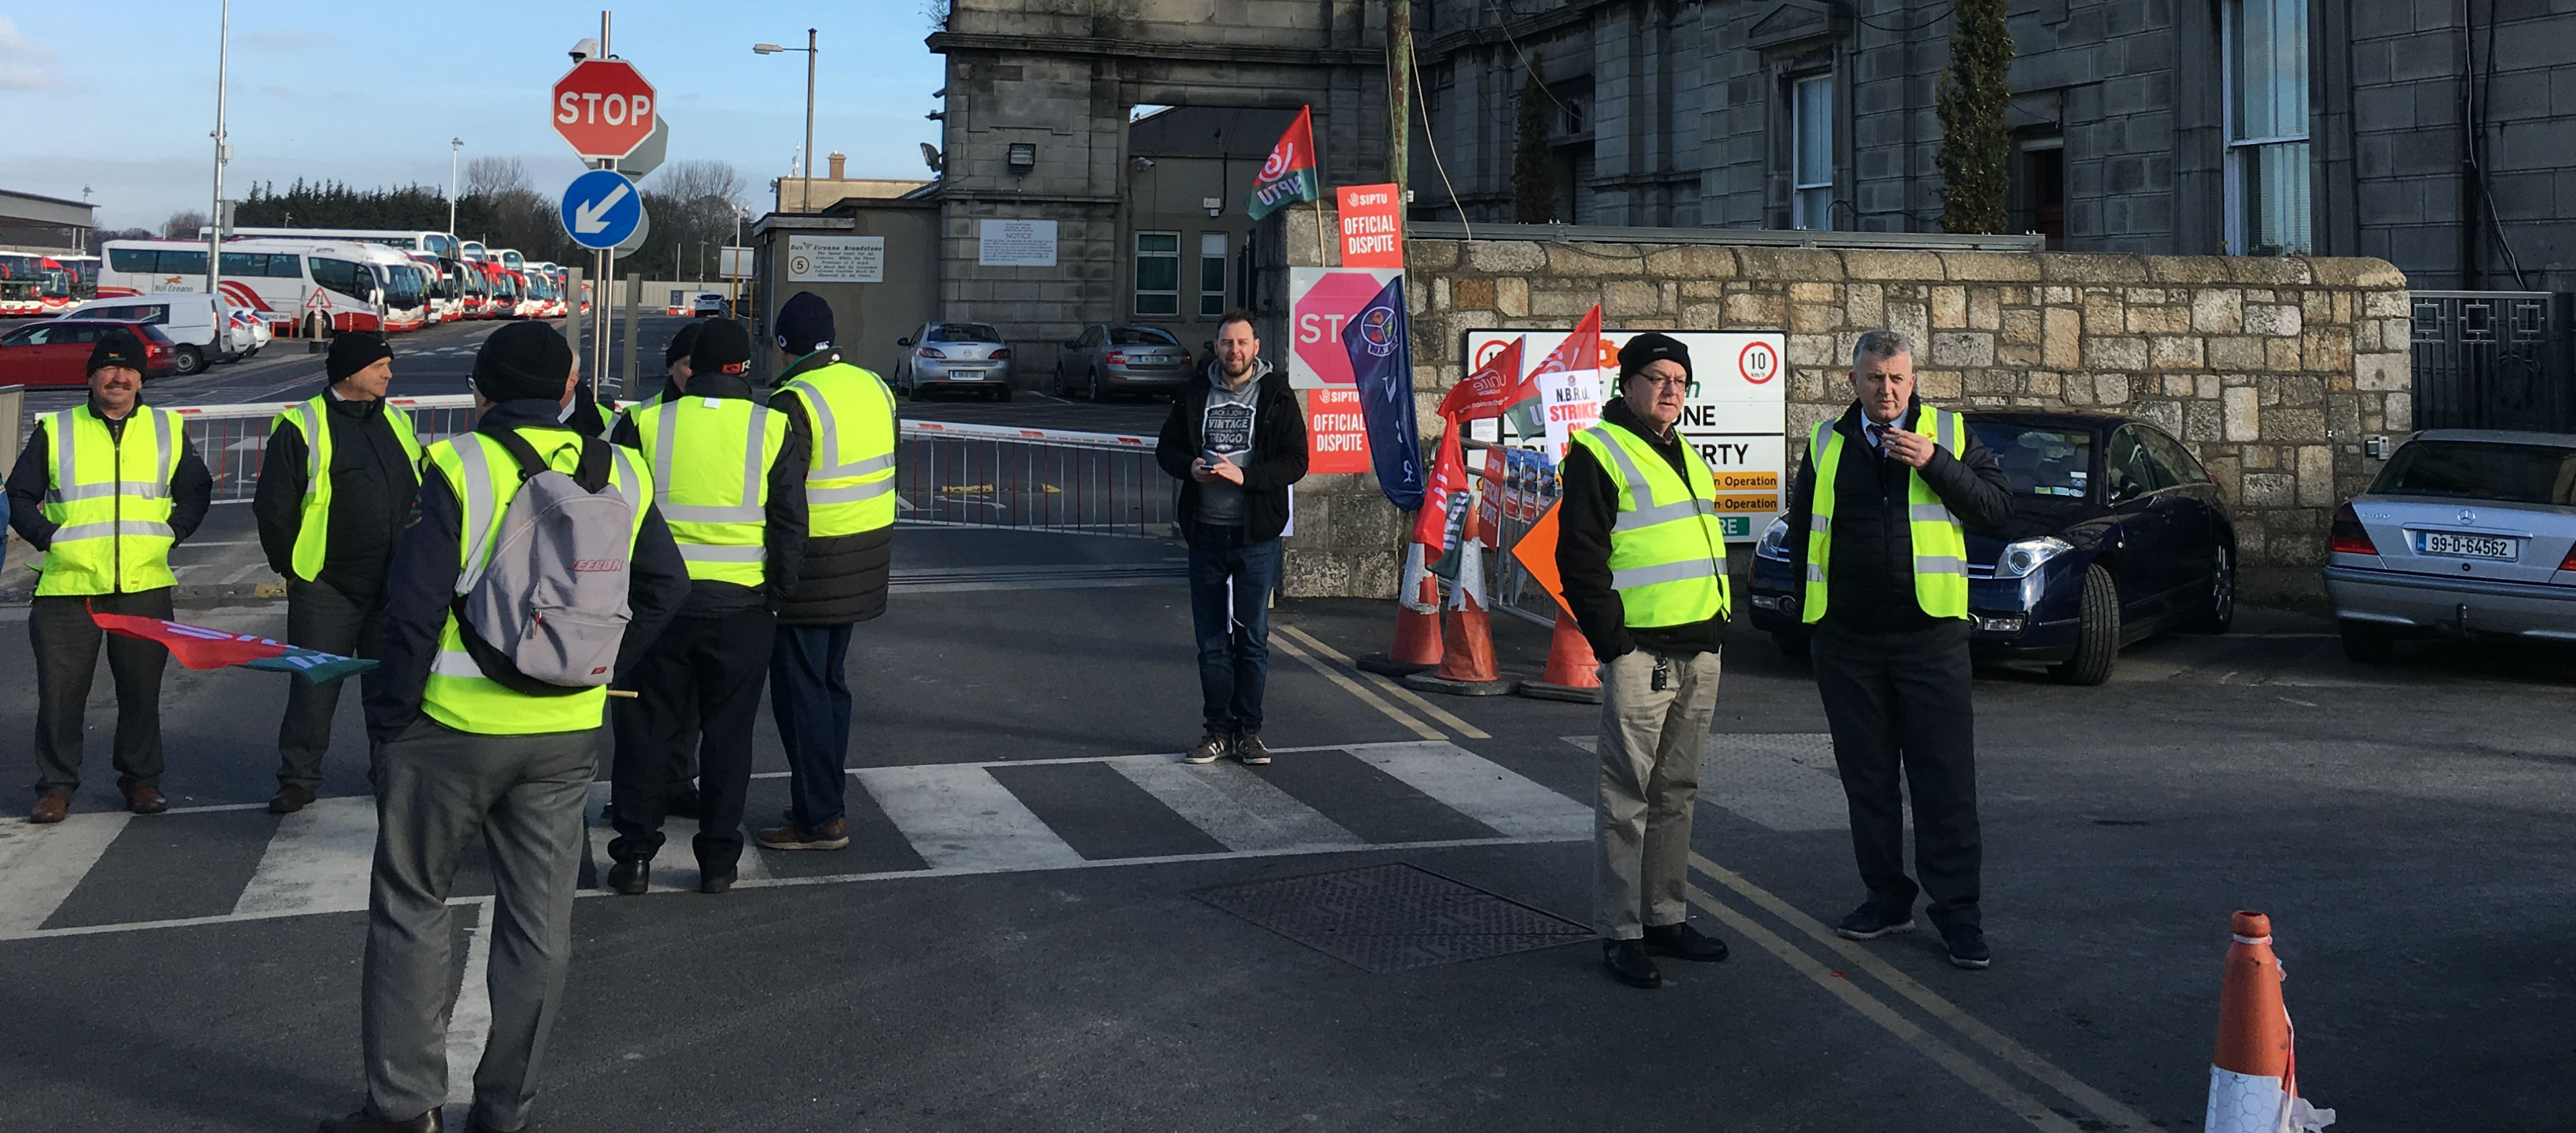 Wildcat Strikes Could Happen Again Says Union Leader